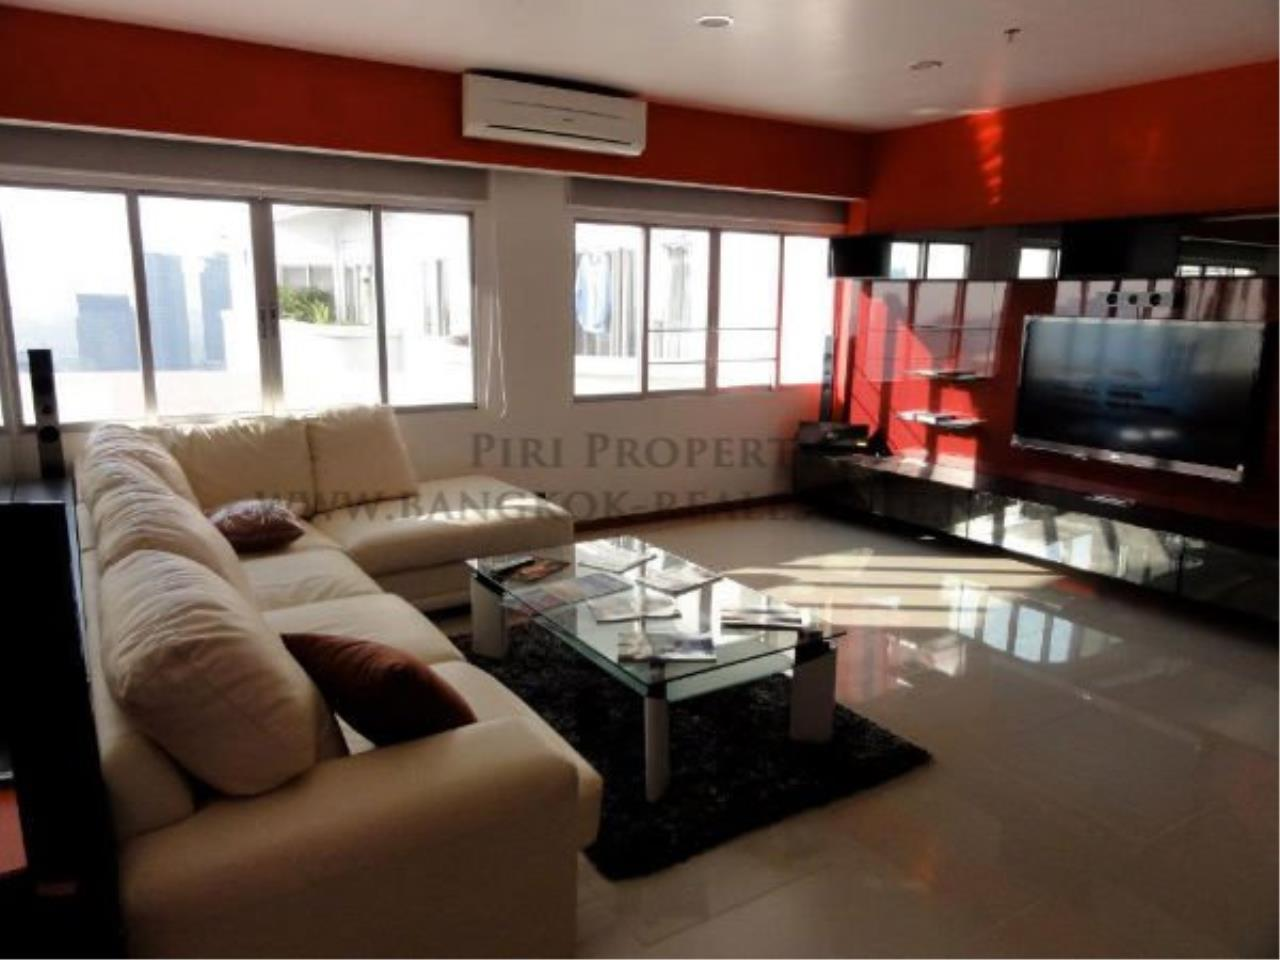 Piri Property Agency's Wittayu Complex - Spacious and Renovated 3 BR Condo 1